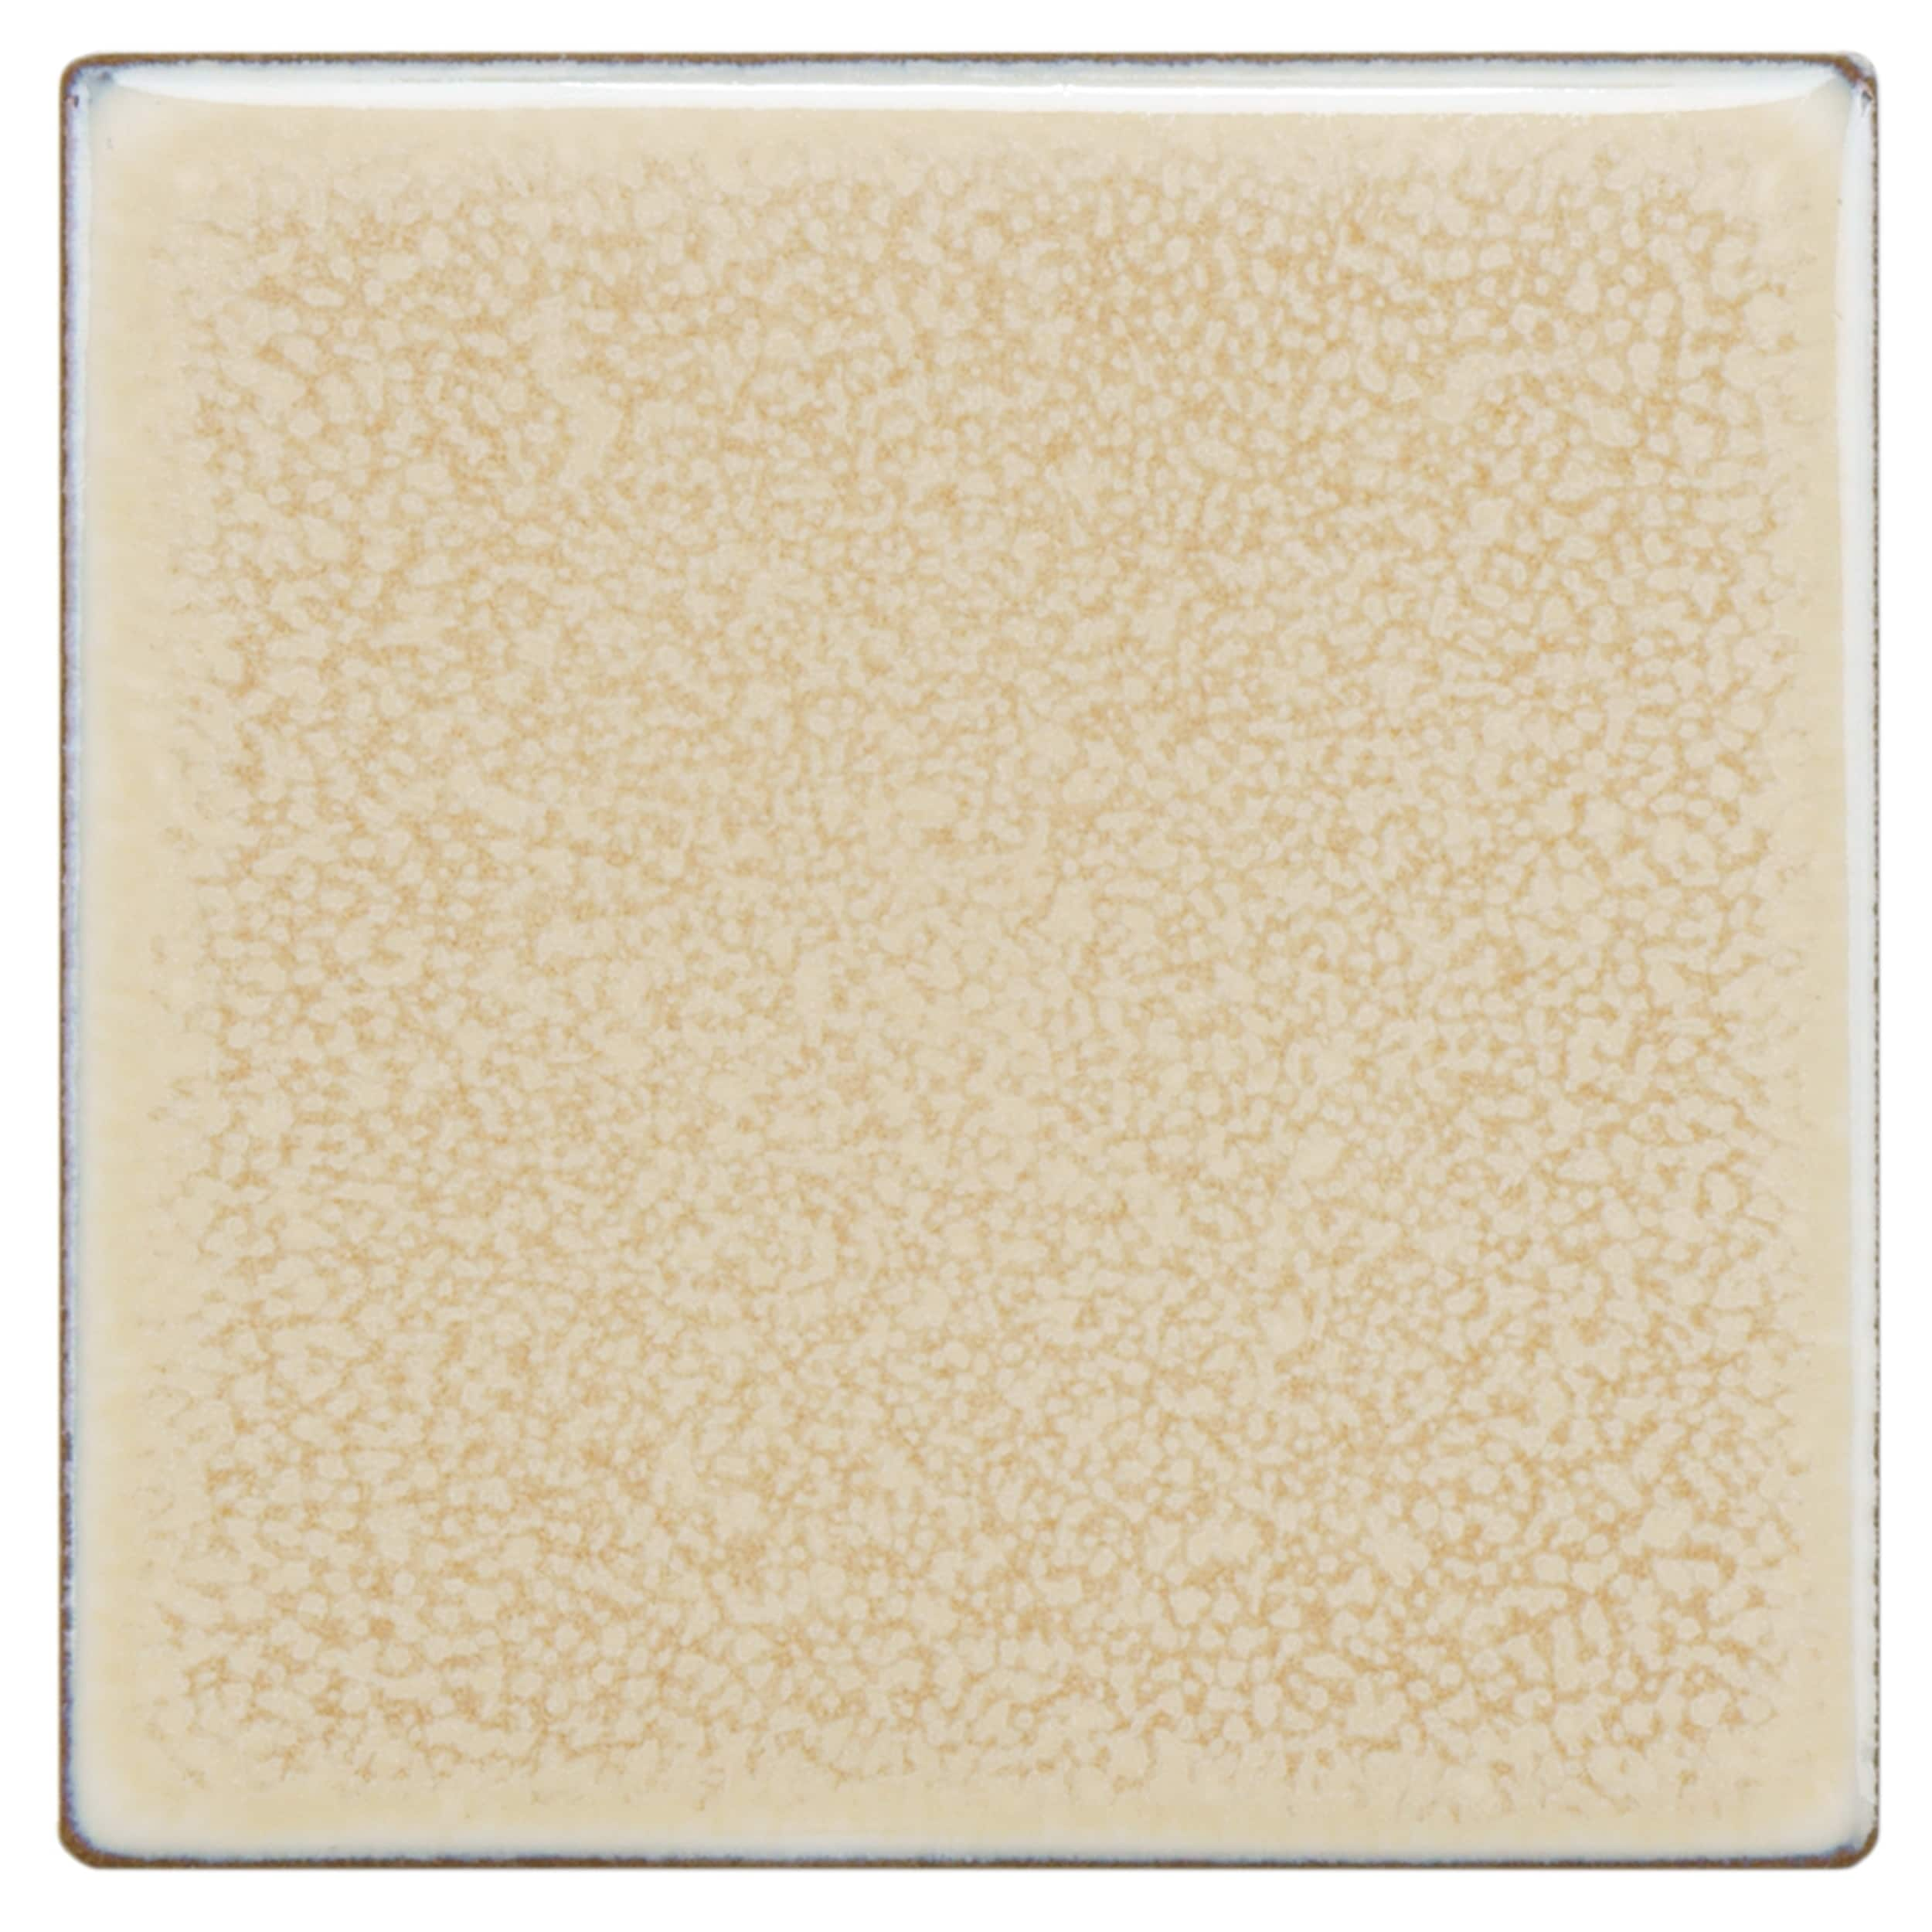 Somertile 4x4-inch Aspect Vanilla Porcelain Floor and Wal...